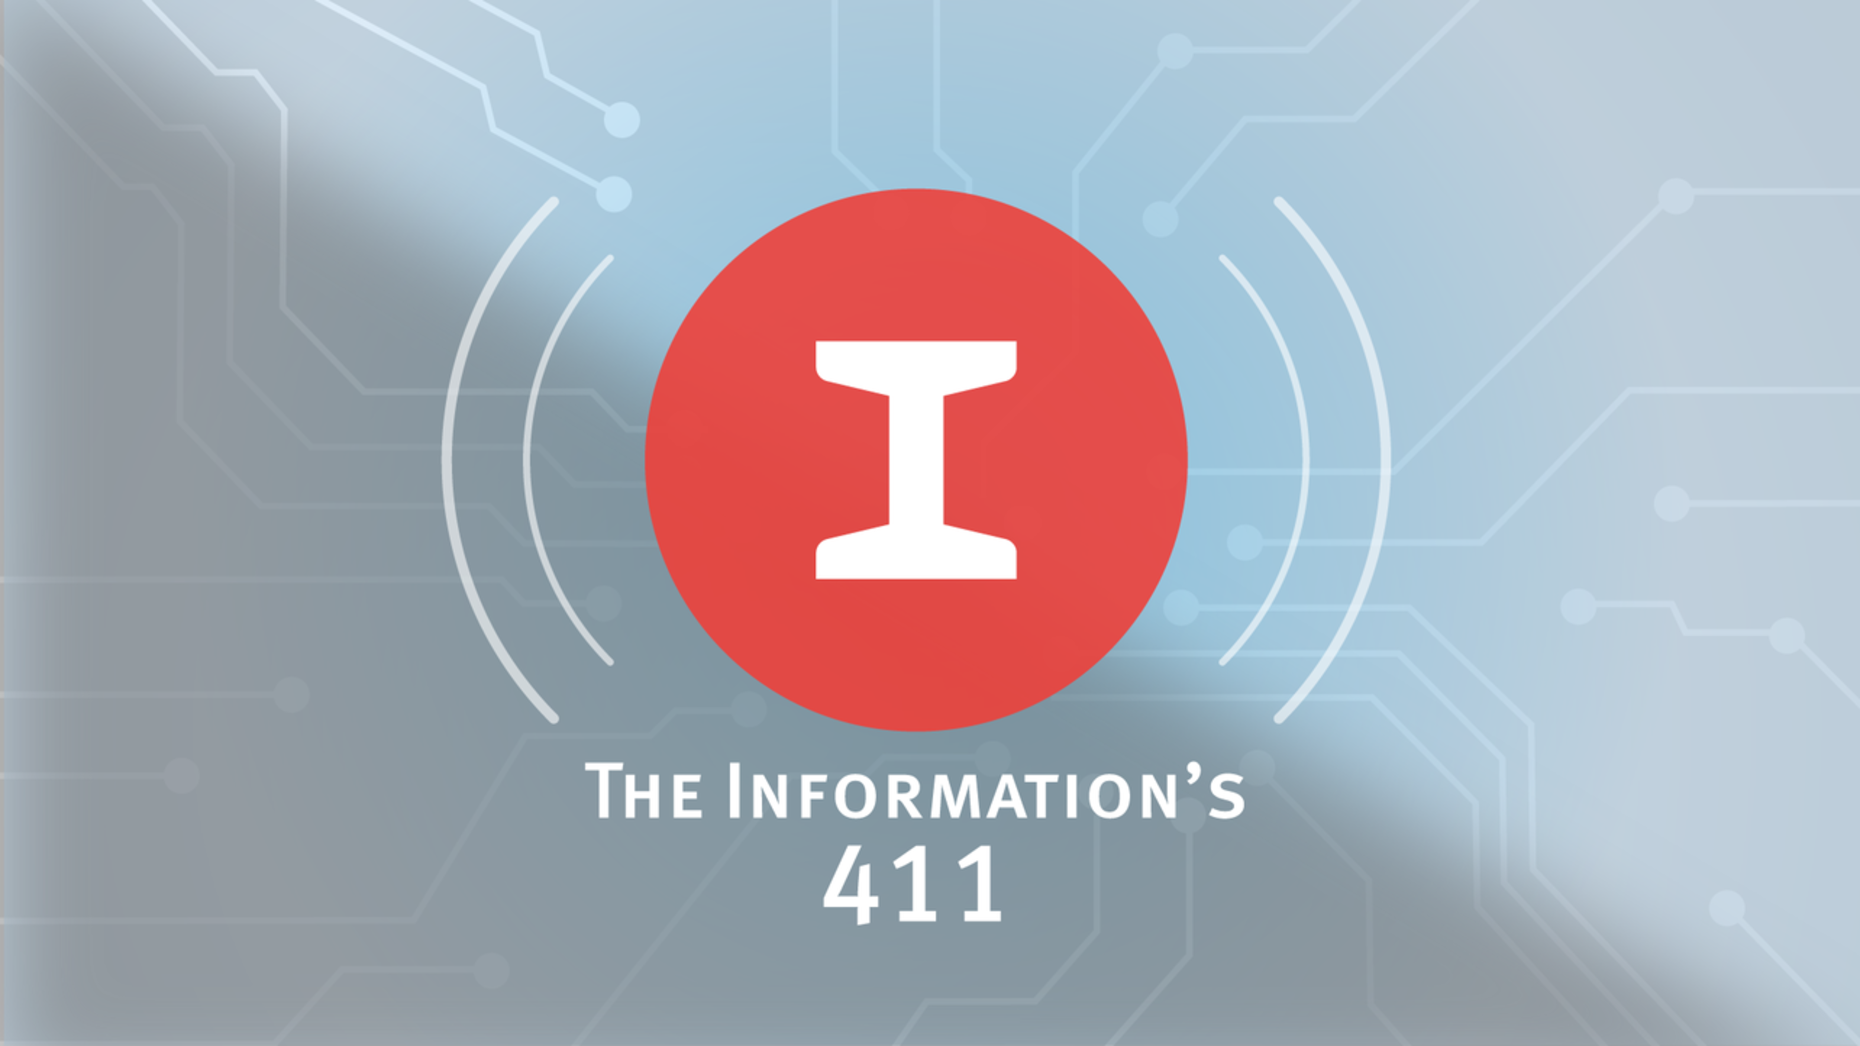 The Information's 411 — The Florida Project